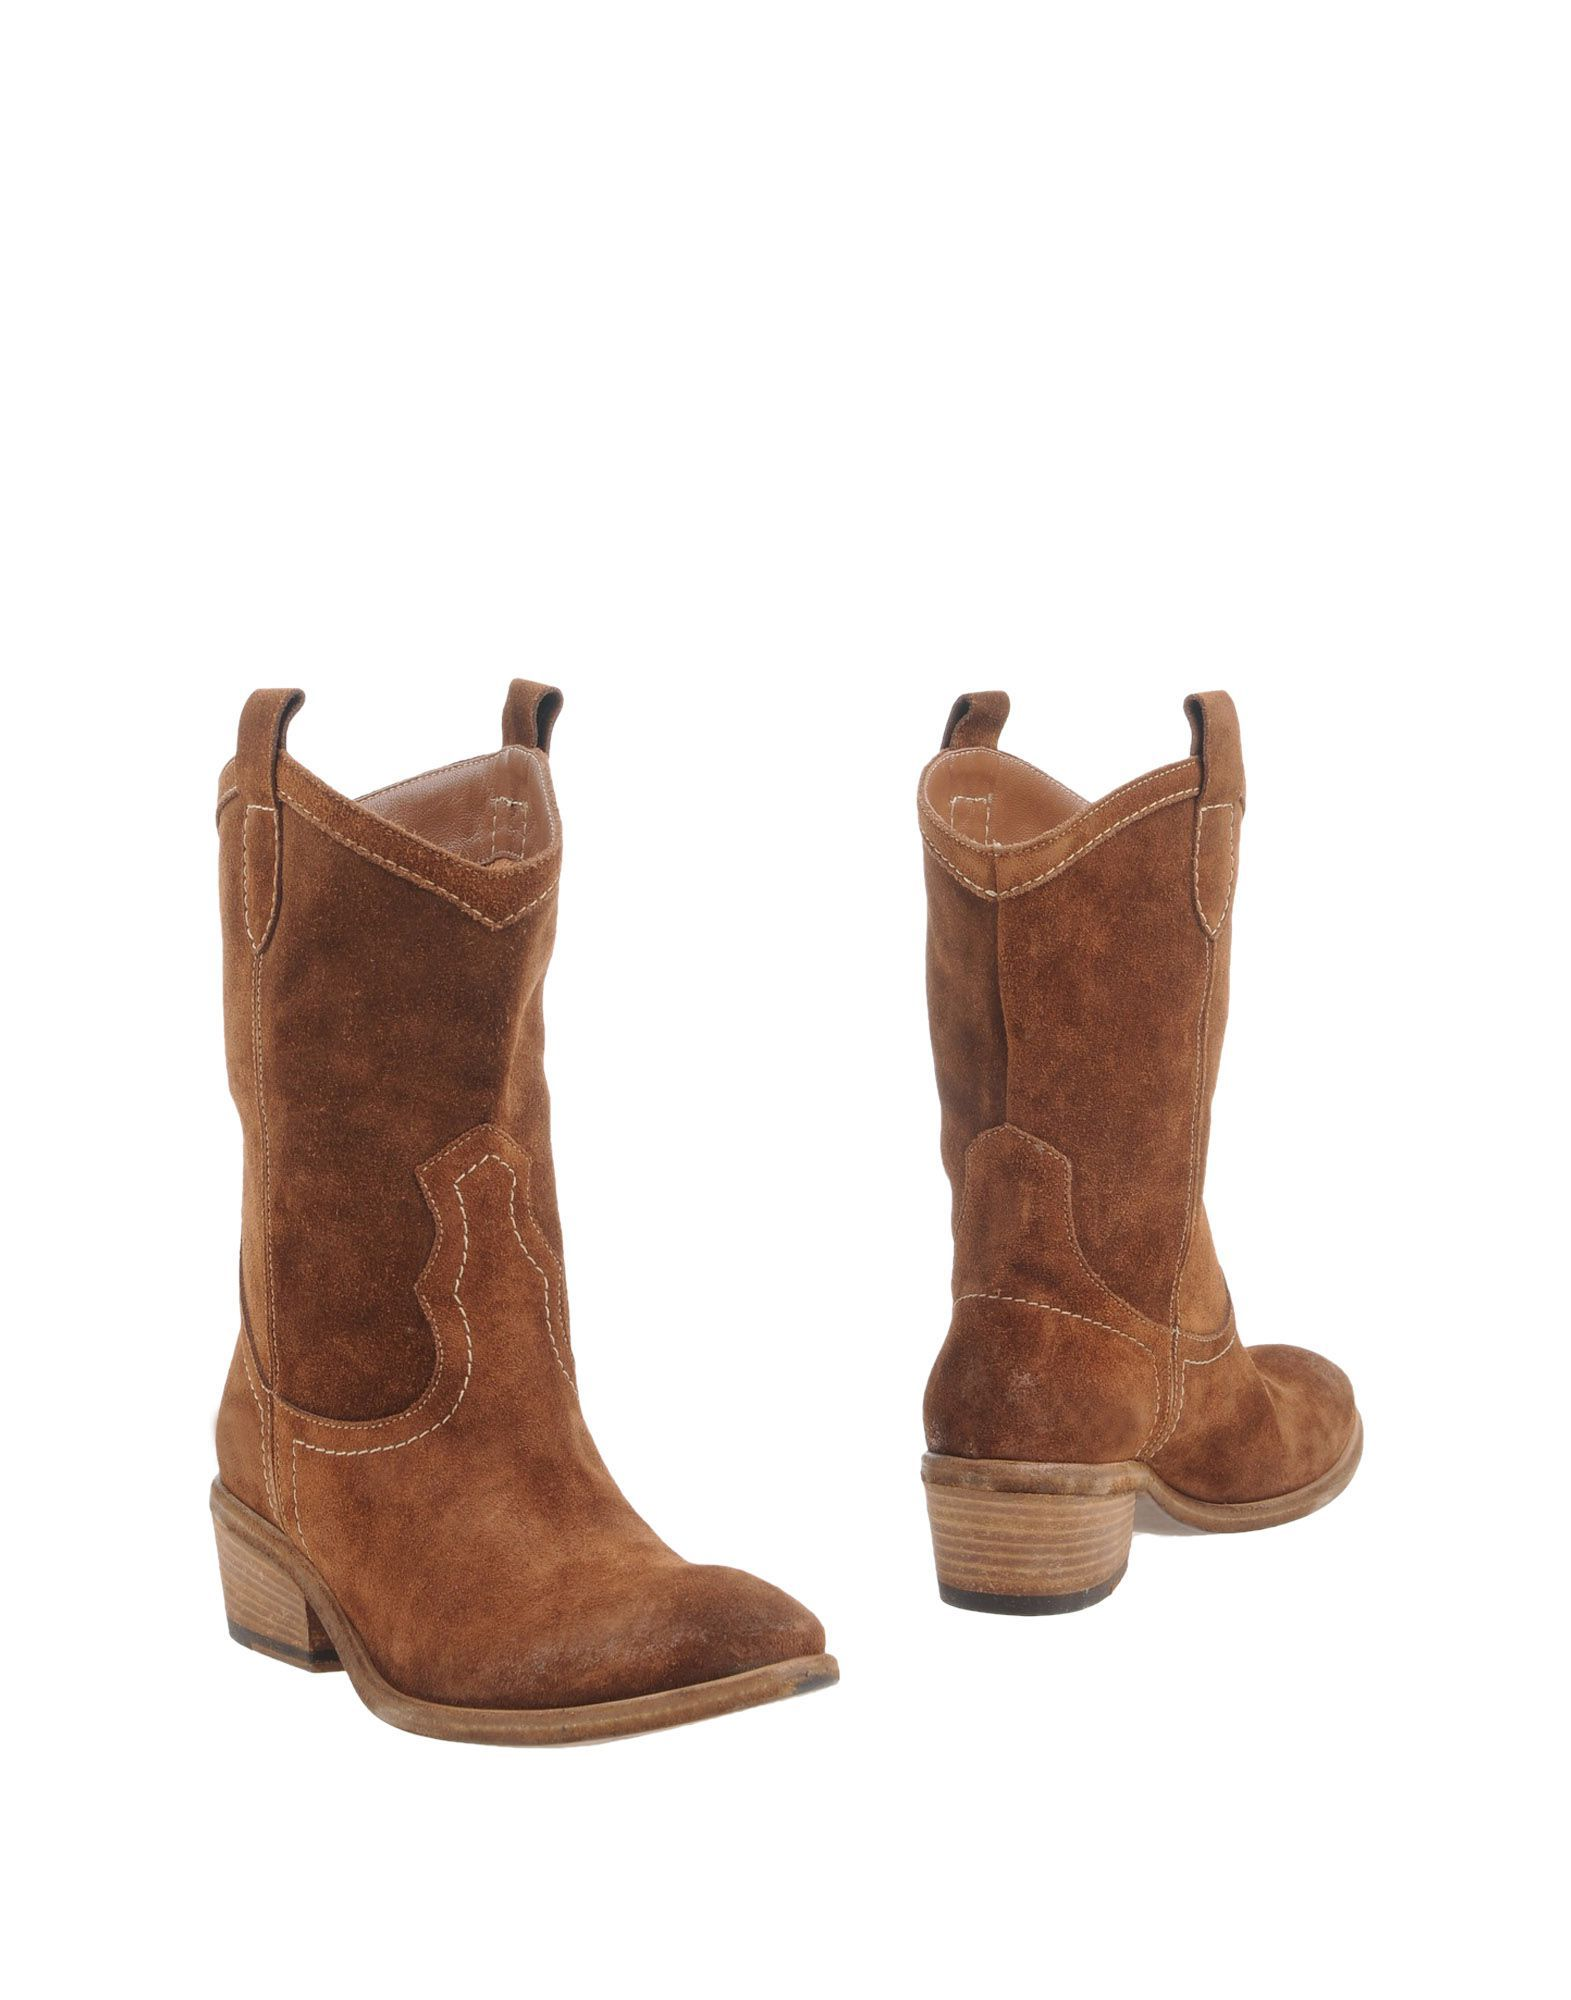 Buy Cheap Really FOOTWEAR - Ankle boots JFK Affordable uKSEyLe